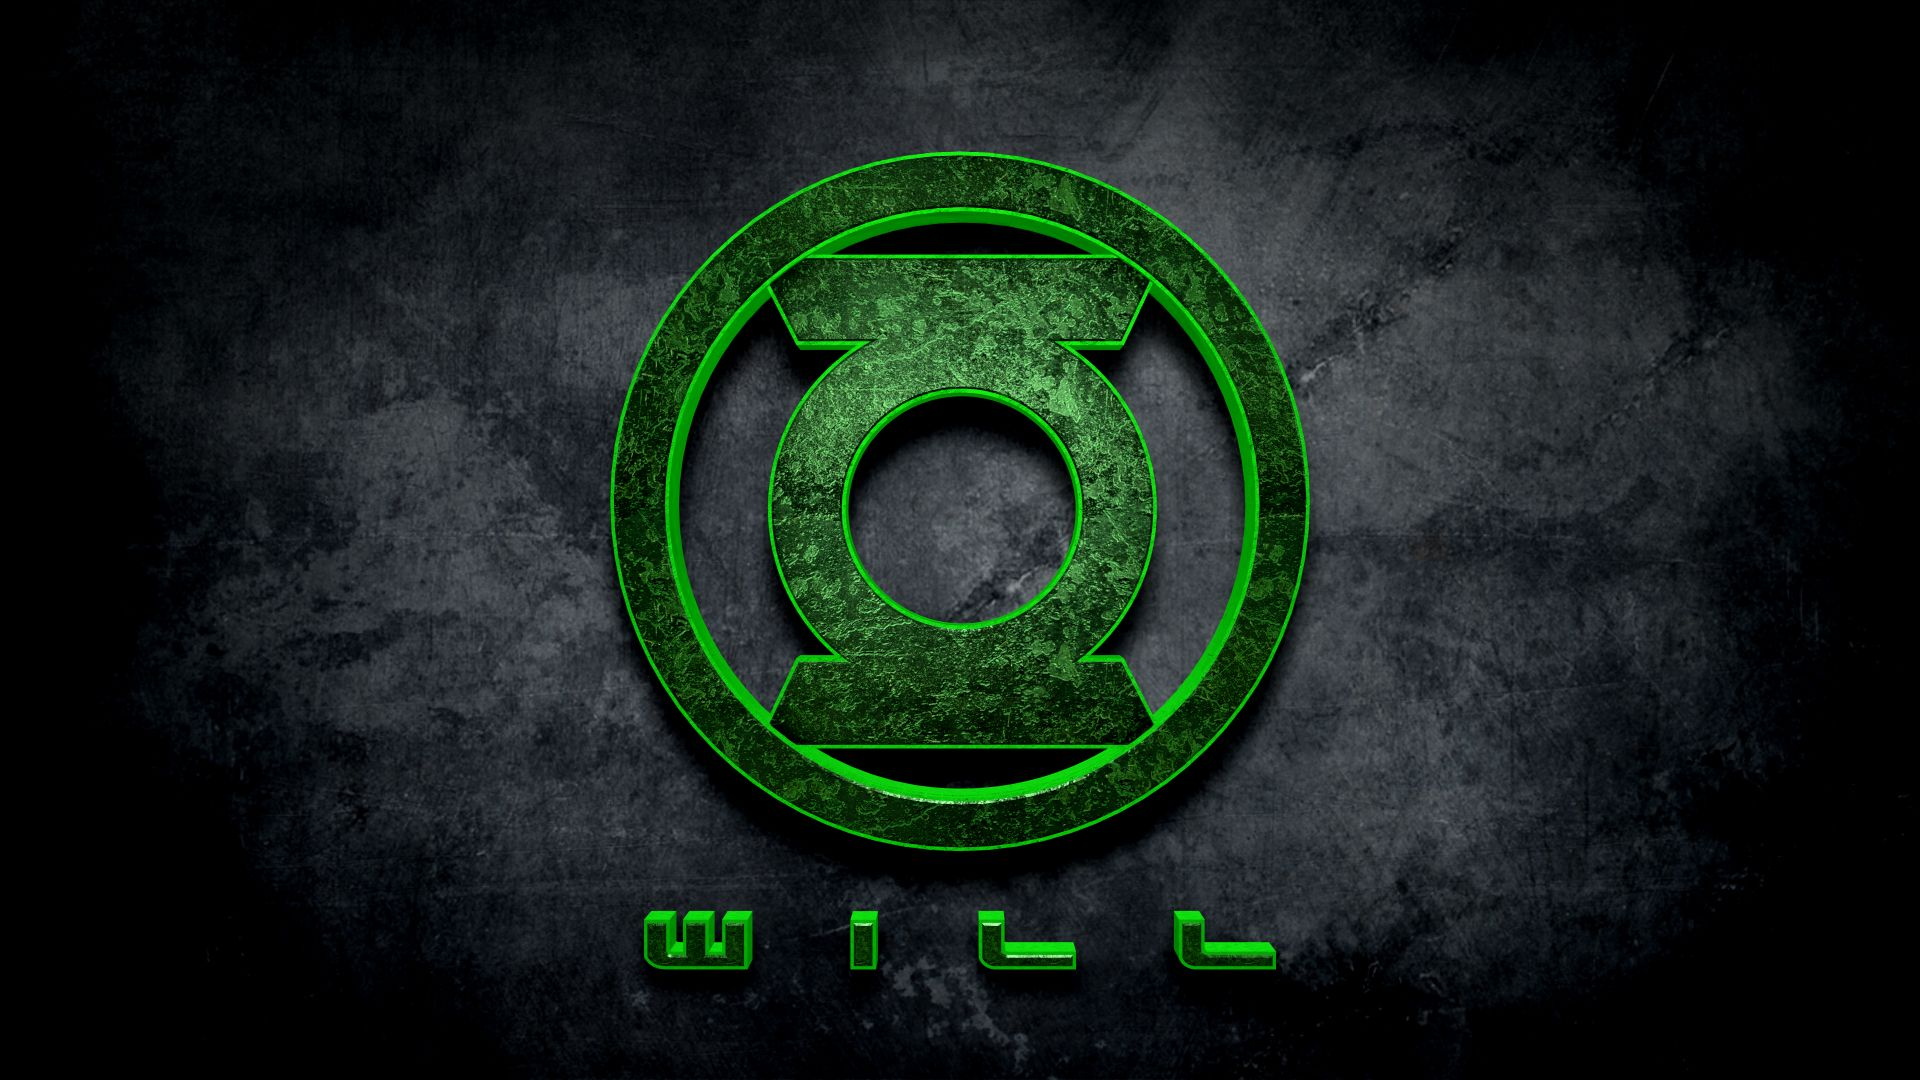 14_green_lantern (1920×1080) | logos marvel vs dc comic